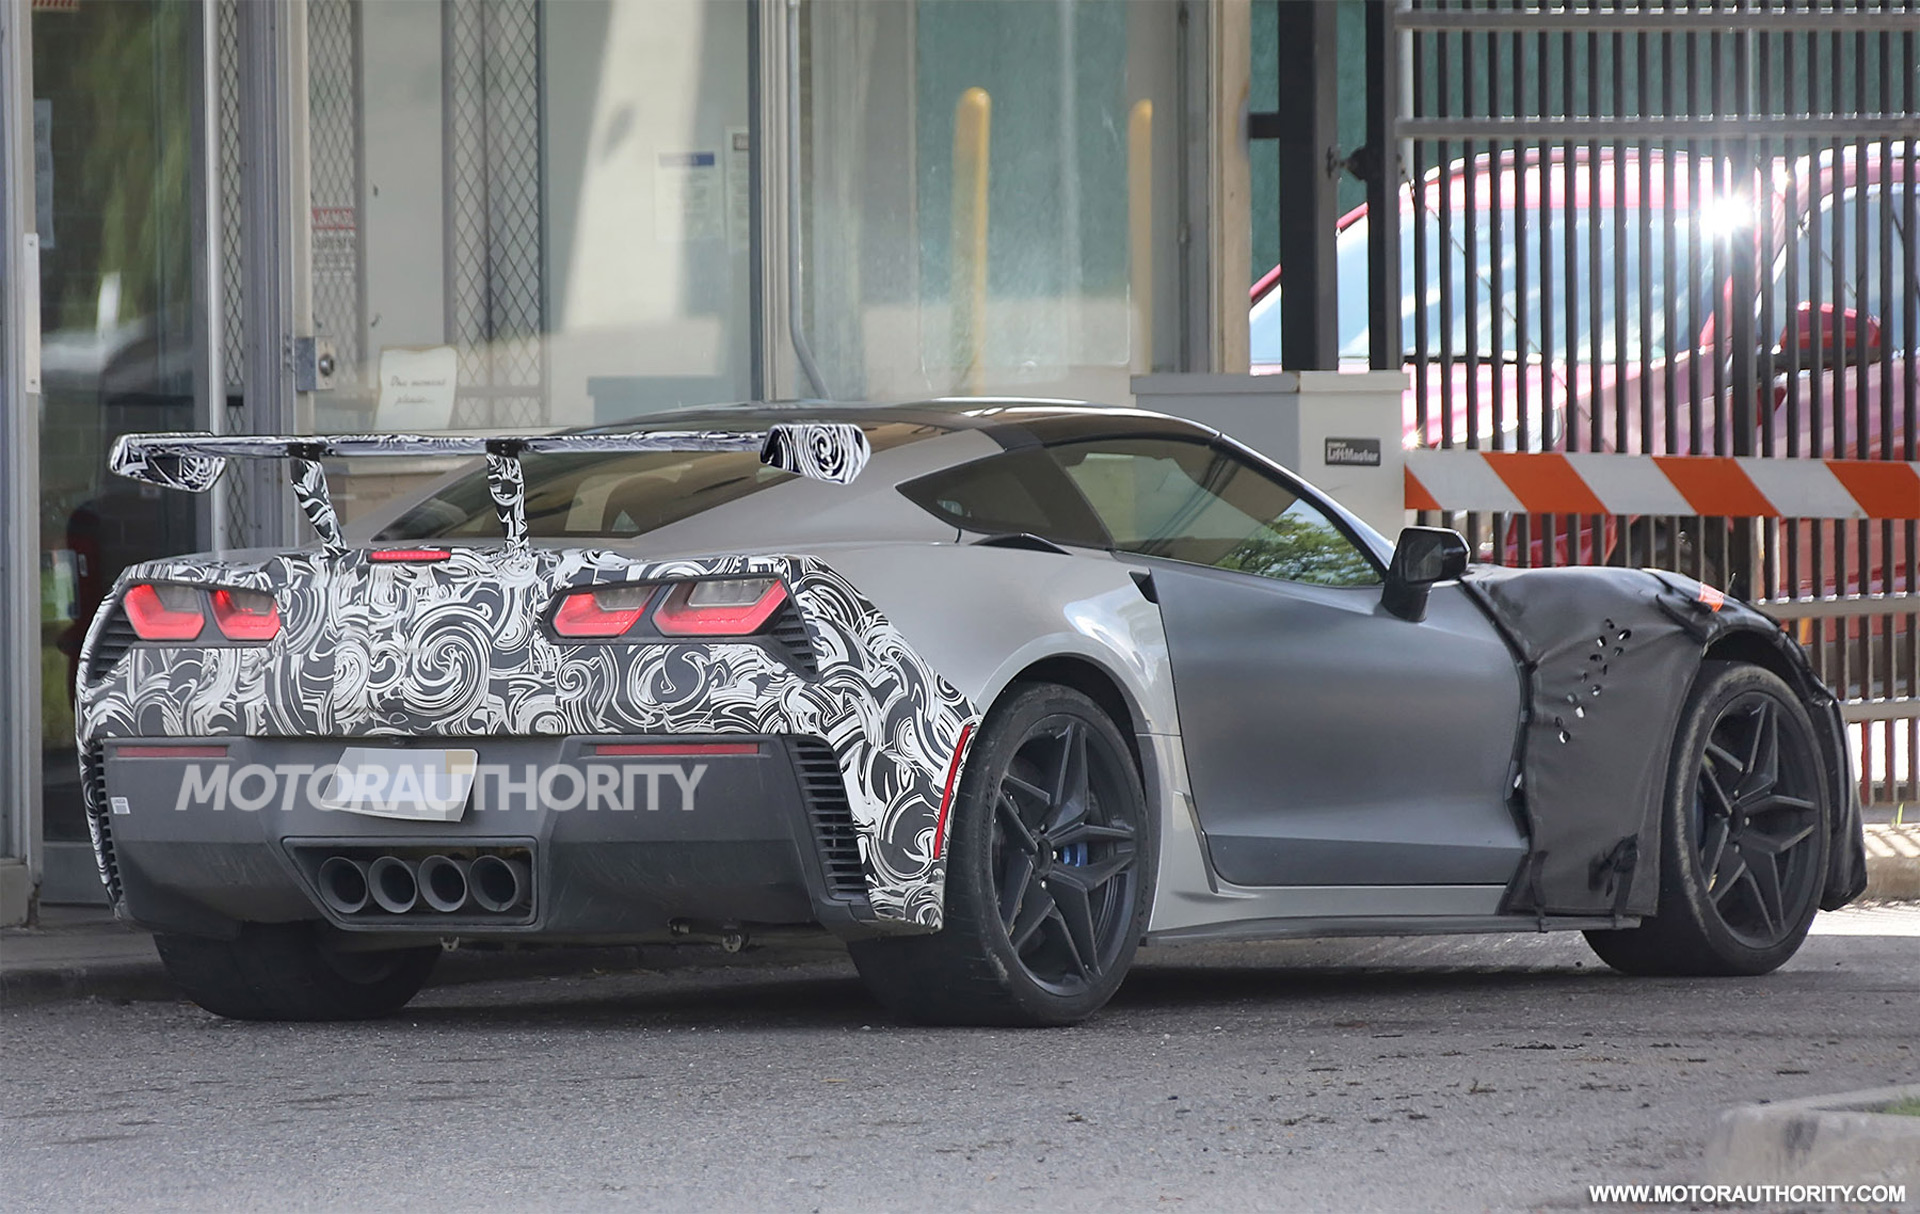 How Much Horsepower Does The New 2018 Chevrolet Corvette Zr1 Need To